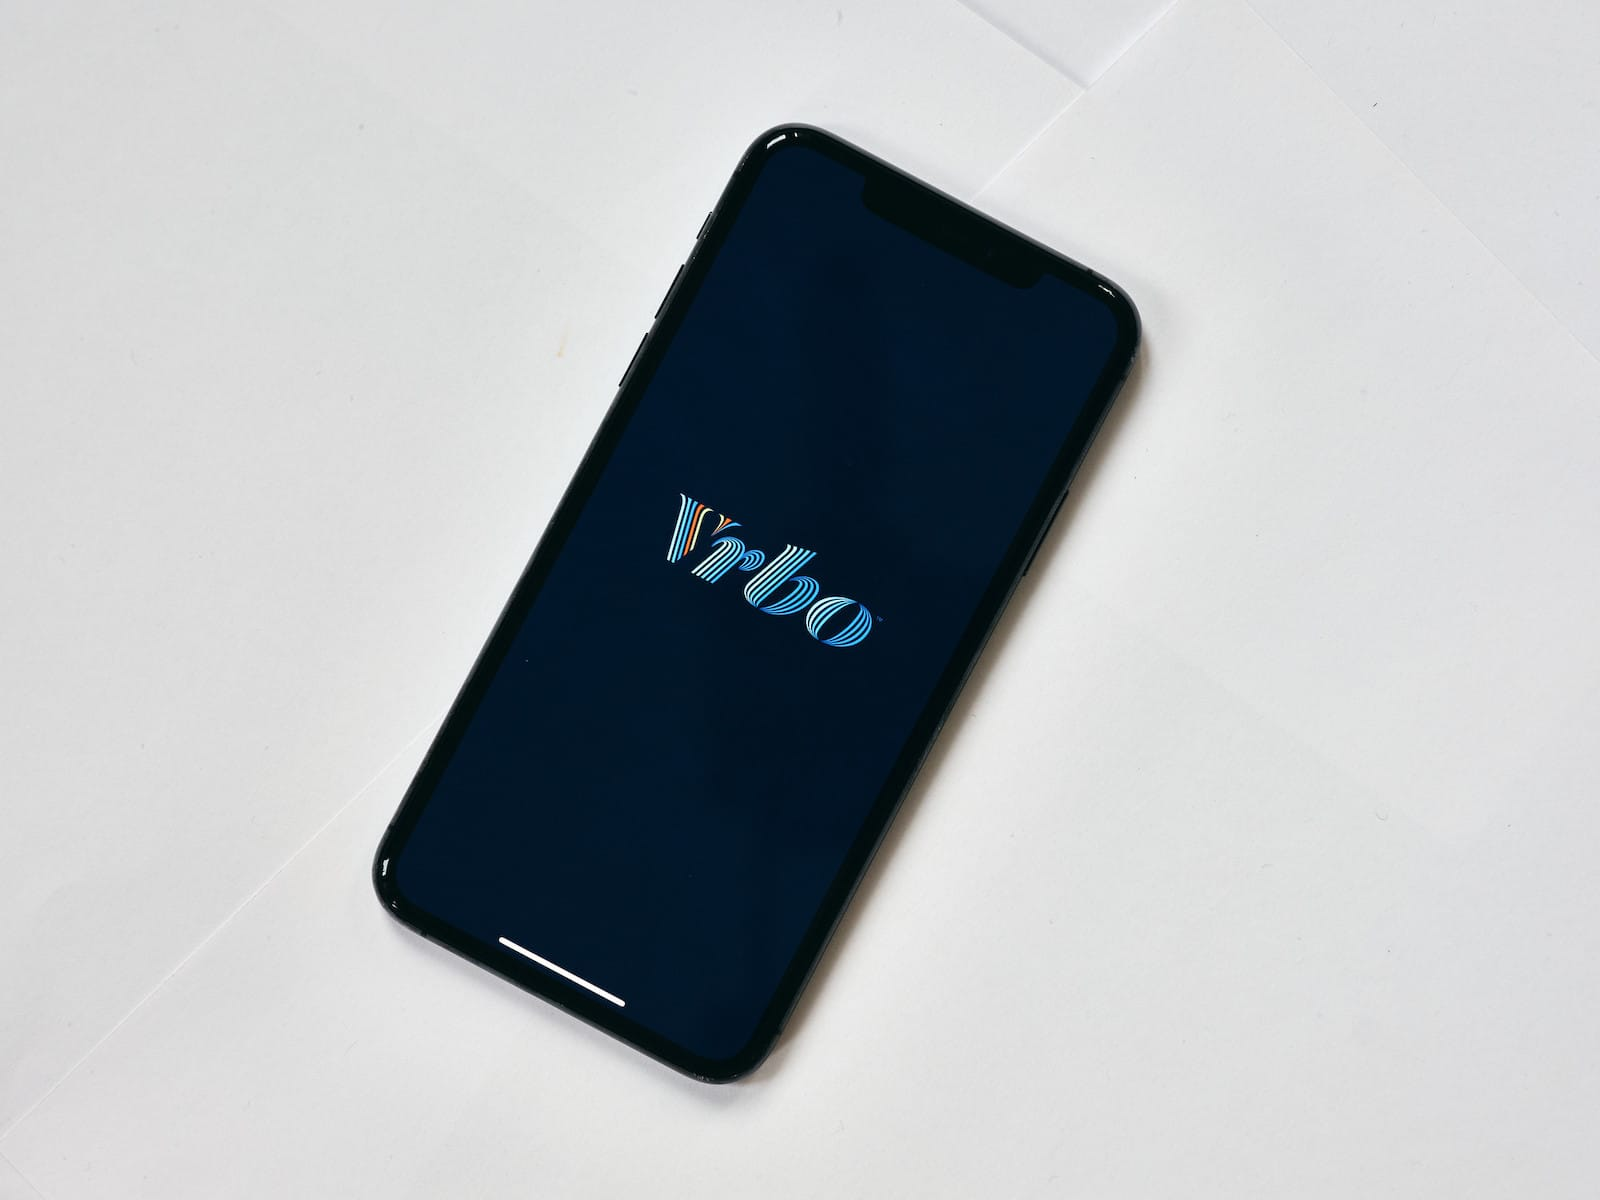 Image of the VRBO logo on a phone